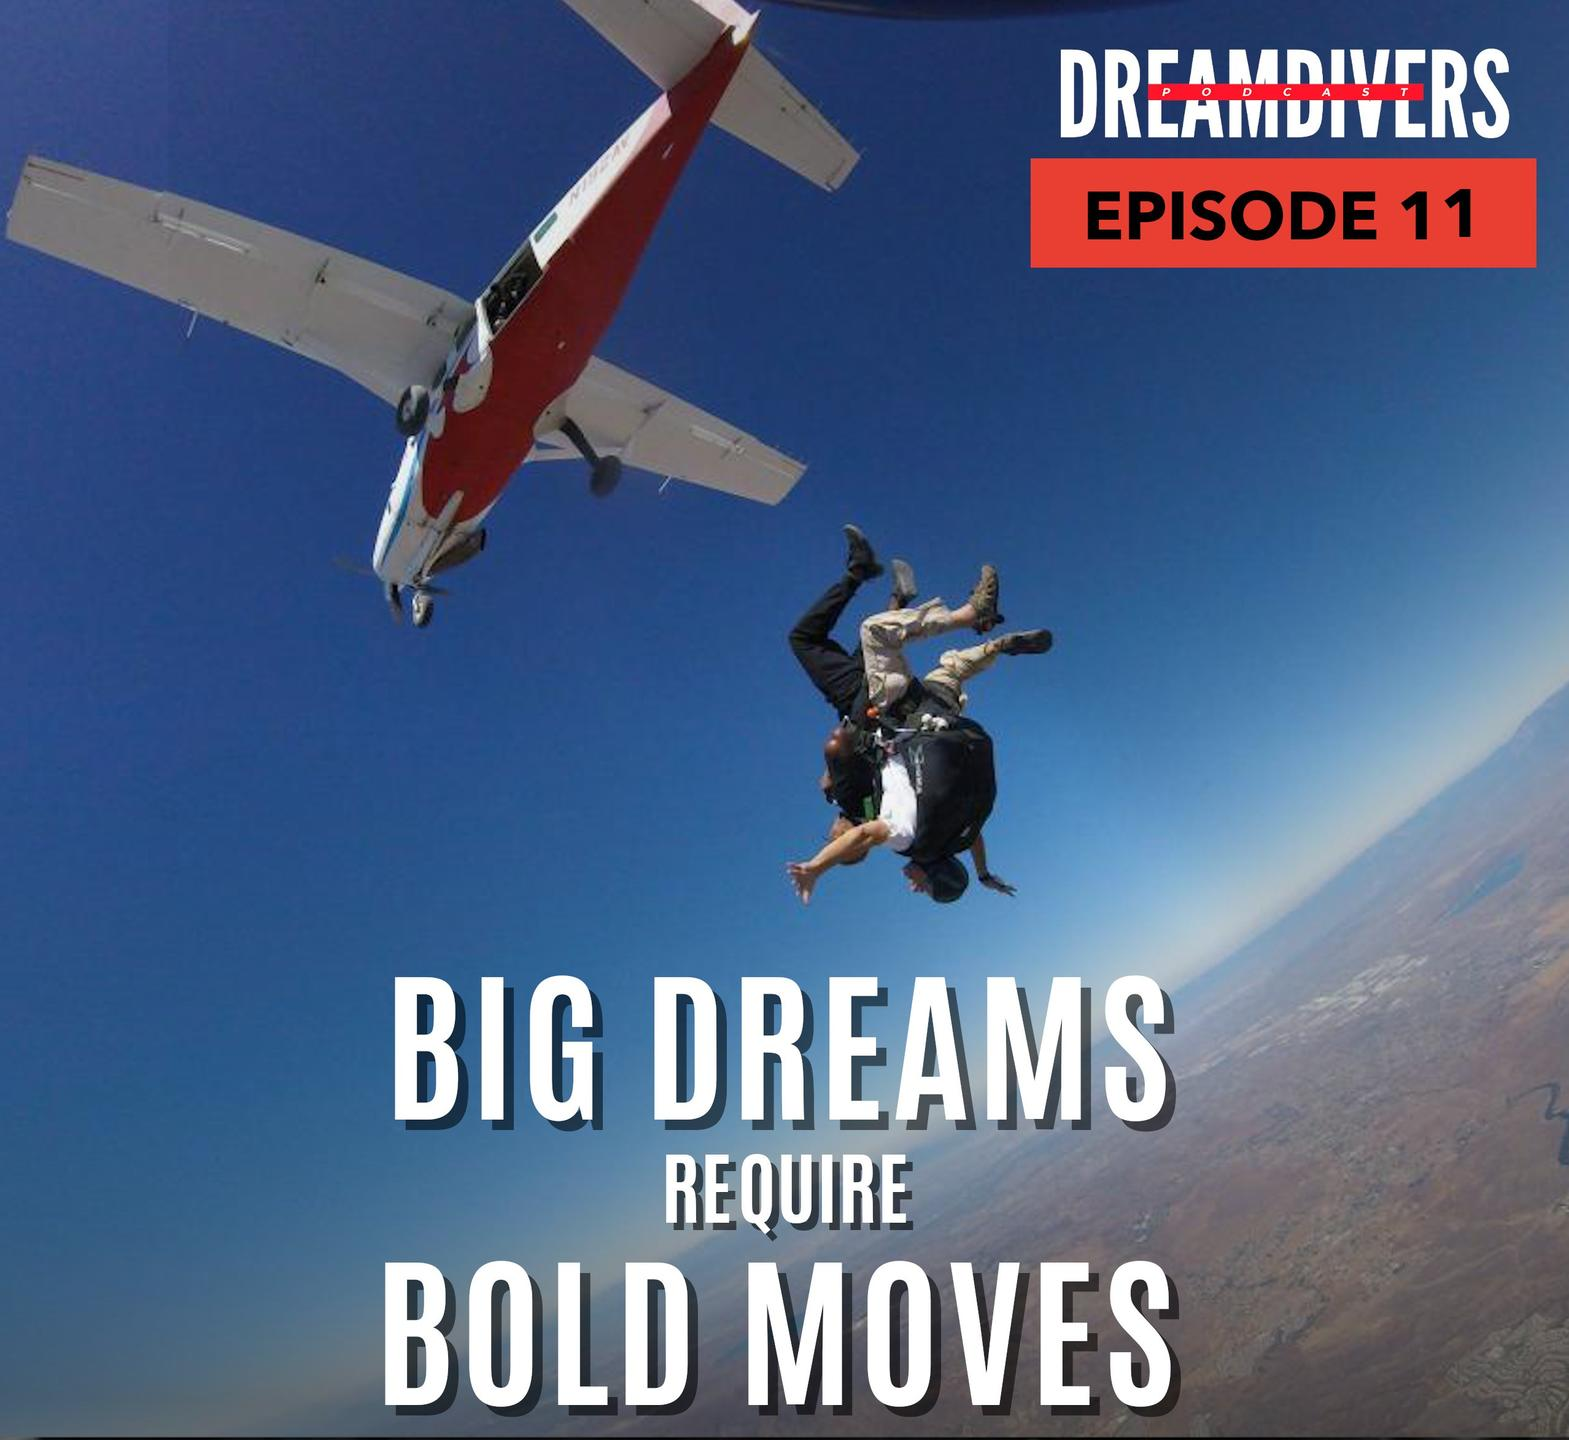 The DreamDivers Podcast Episode 7